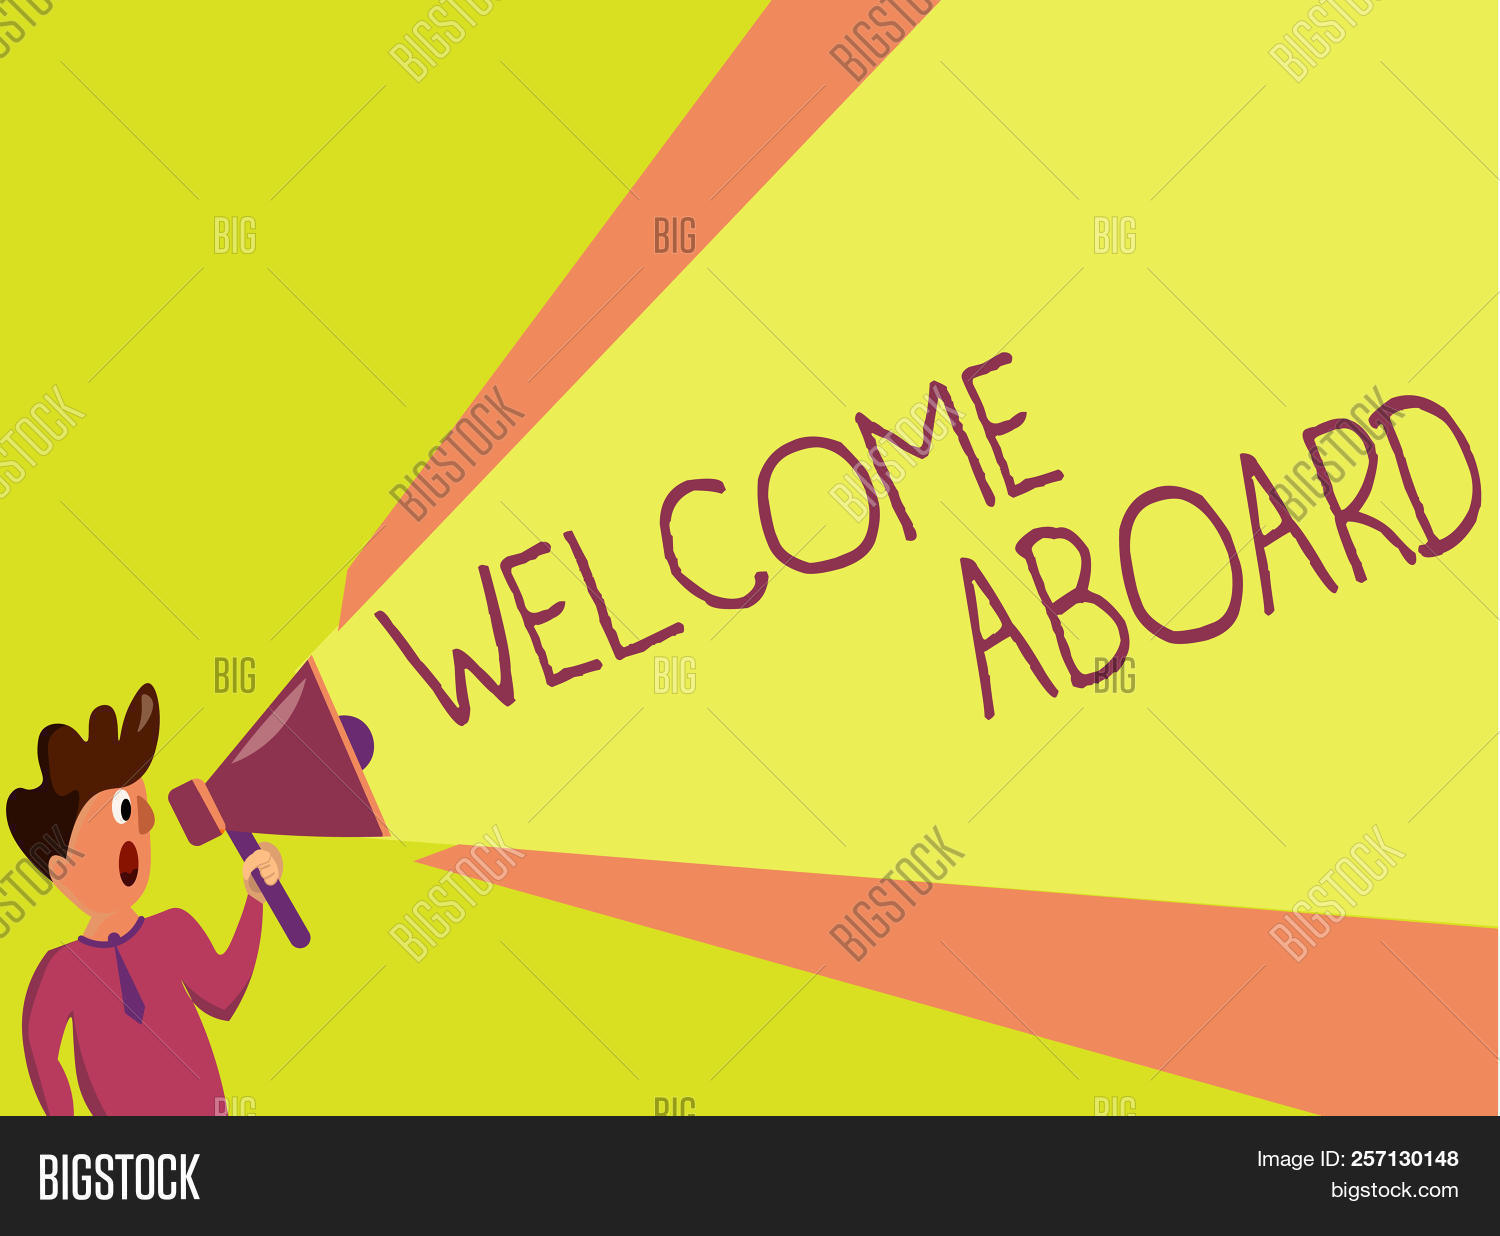 Handwriting text image photo free trial bigstock handwriting text writing welcome aboard concept meaning expression of greetings to a person whose a m4hsunfo